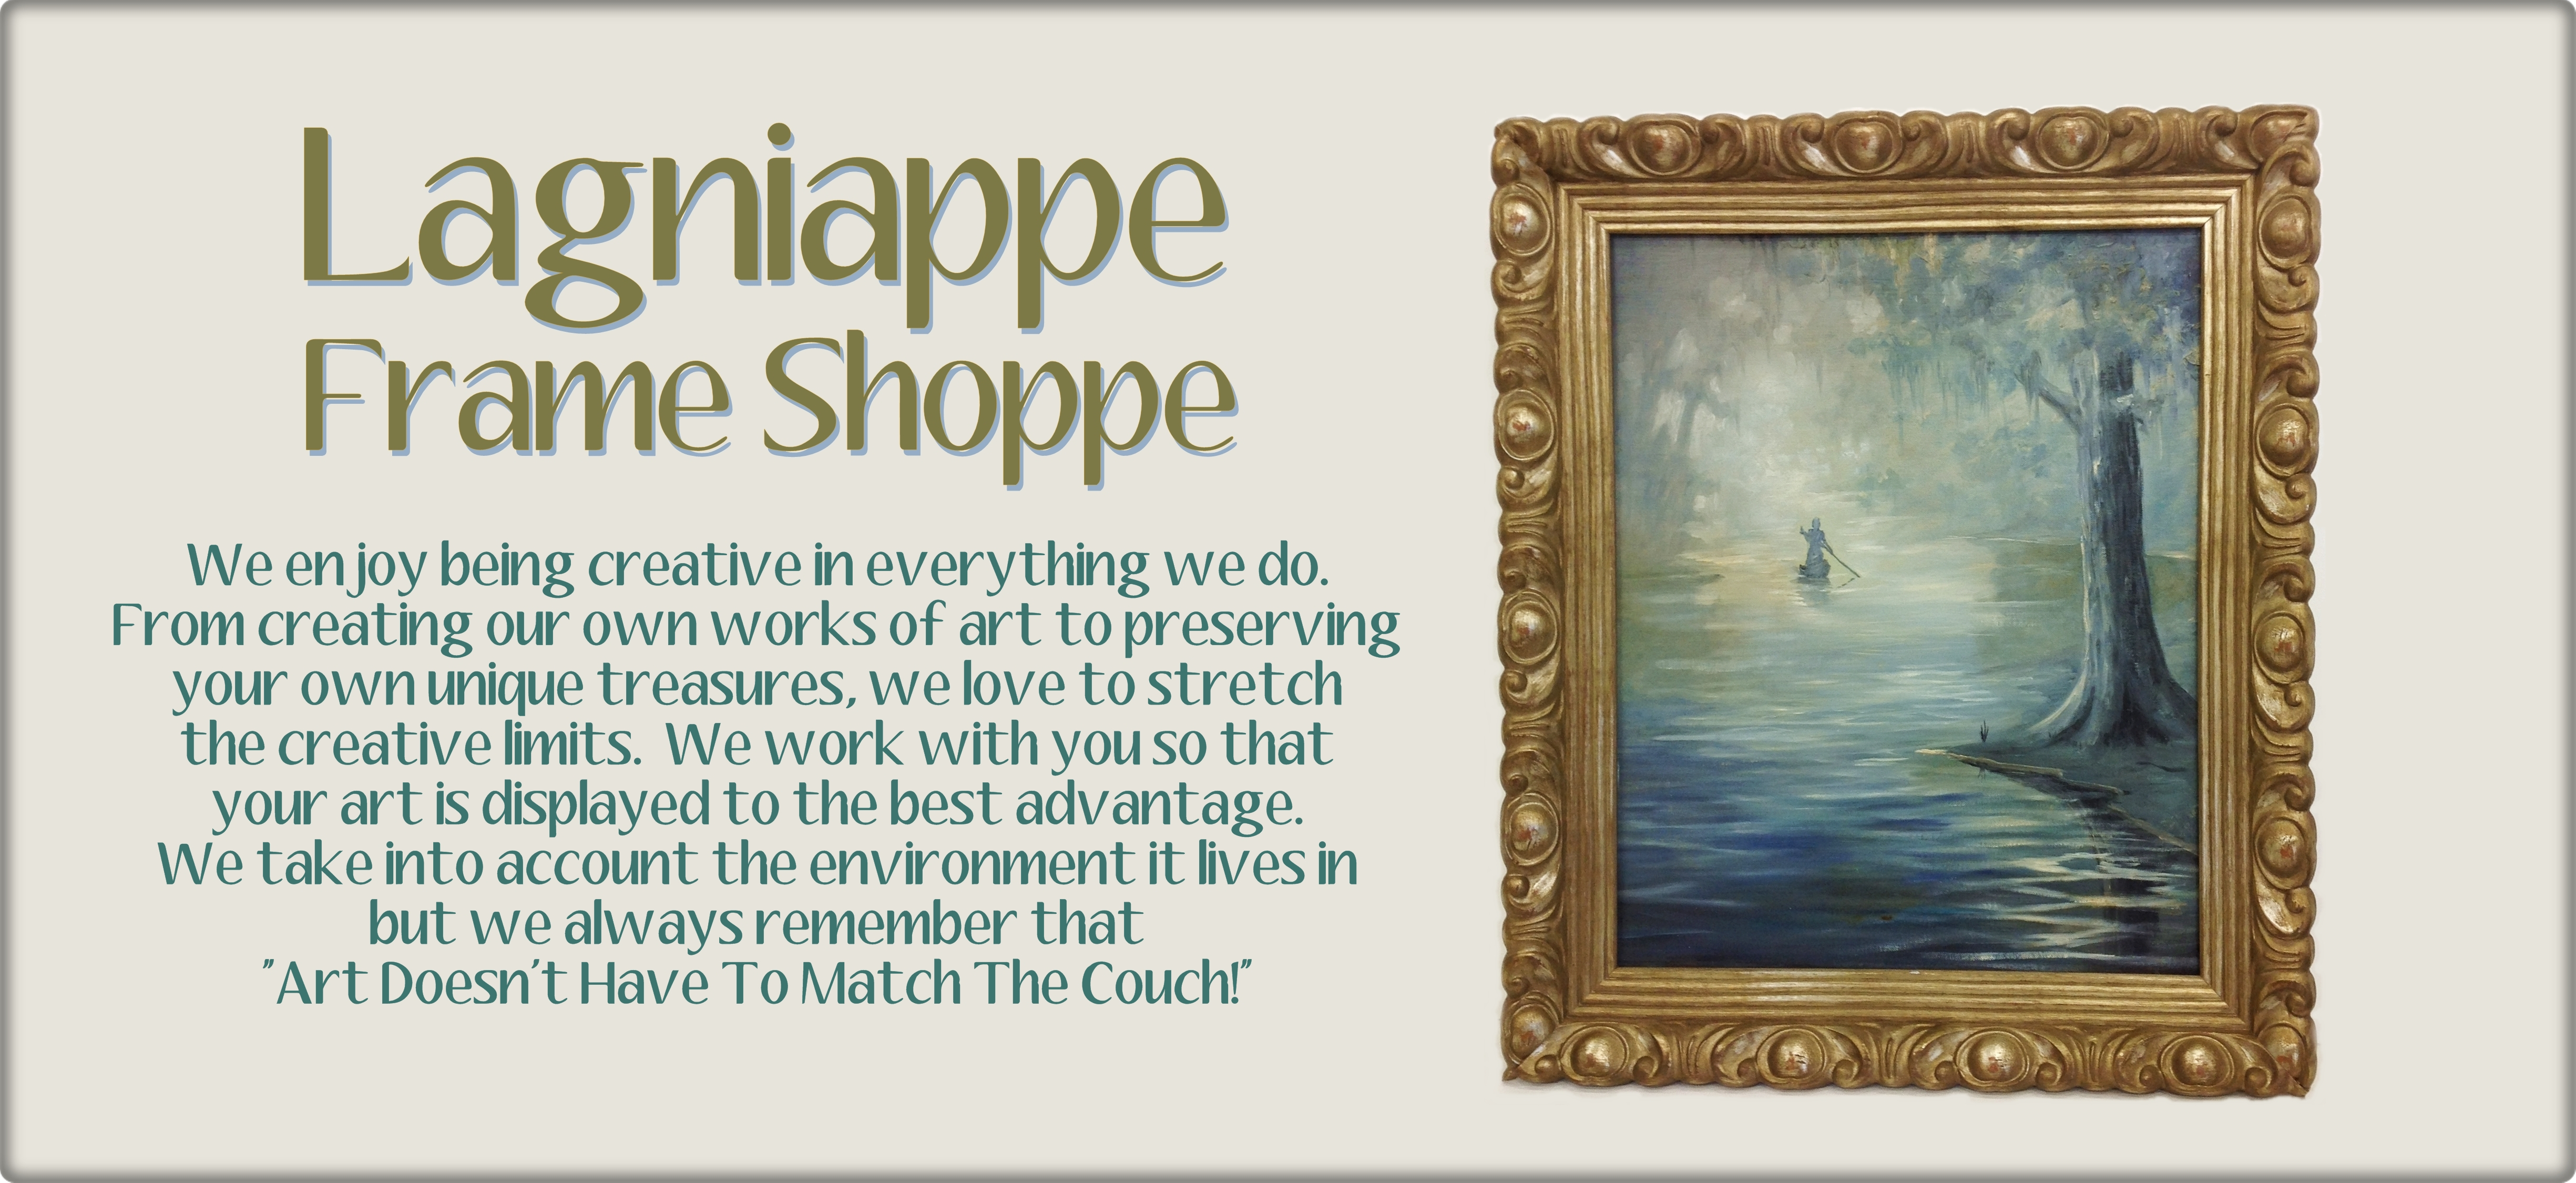 Contact Us - Lagniappe Frame Shoppe and Fleur deSign Studio